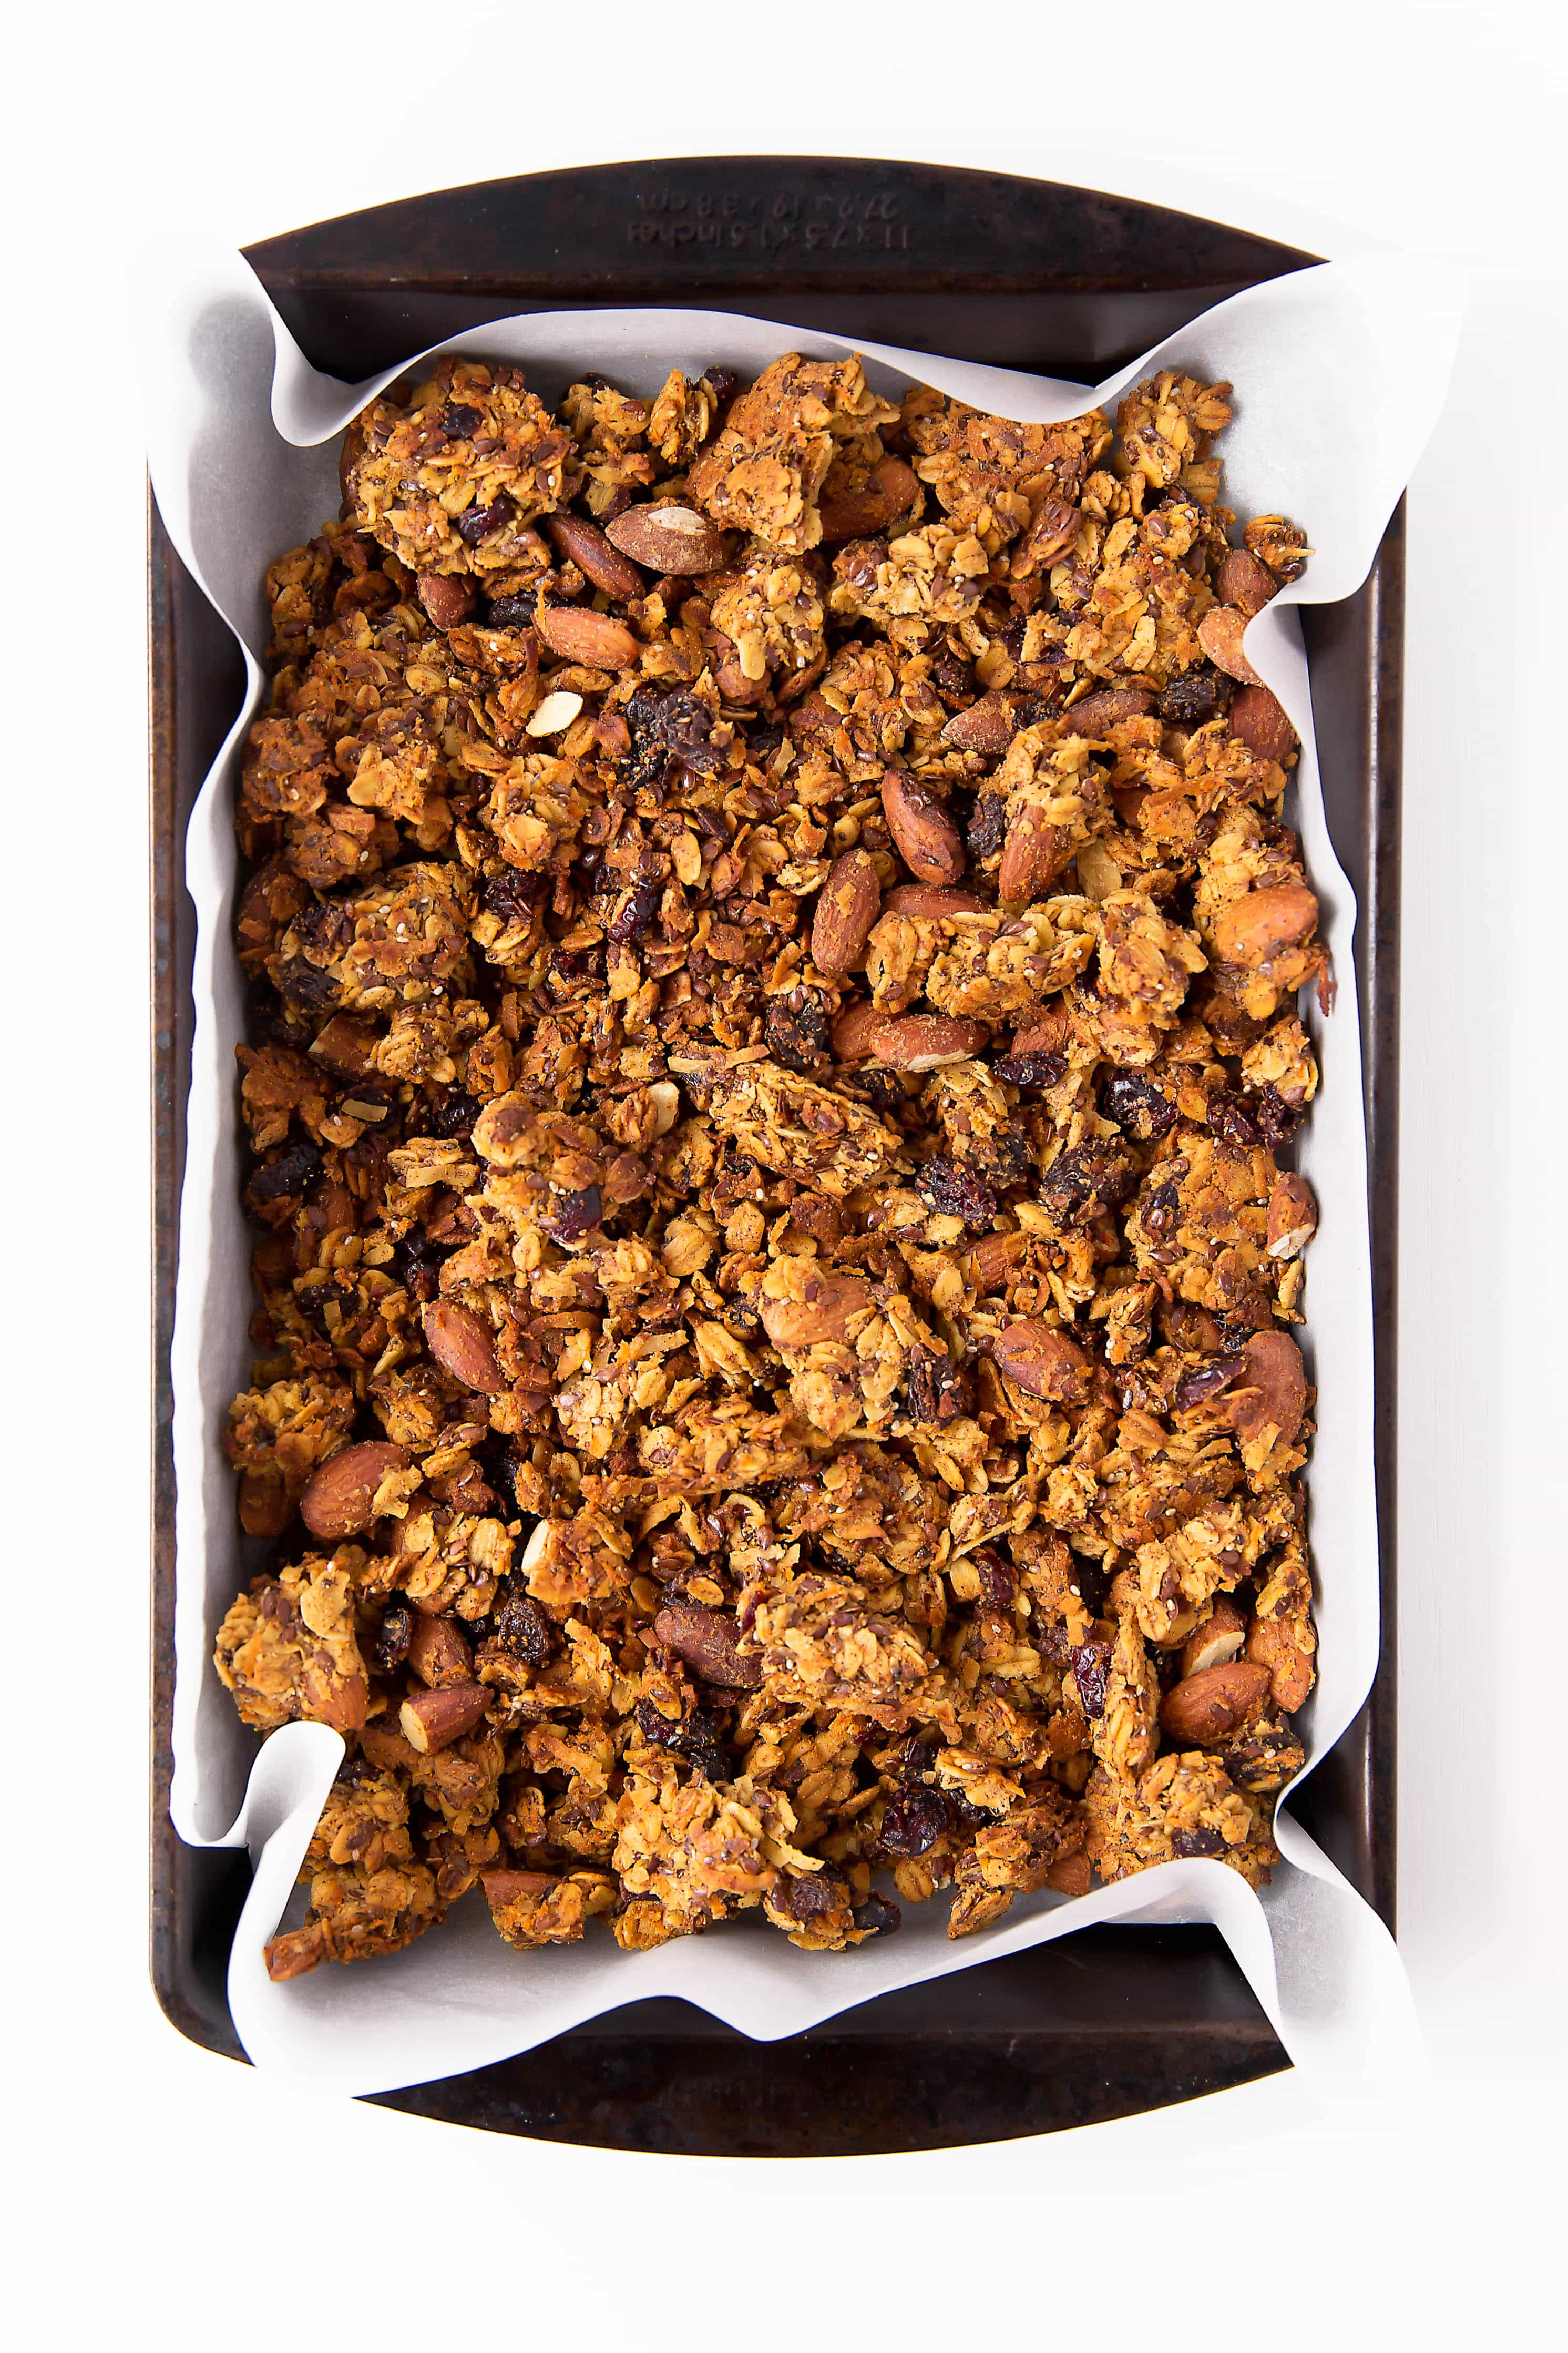 Packed with carrots, coconut, cinnamon, and raisins, this Carrot Cake Granola takes breakfast up a notch. Gluten free, refined sugar free, and loaded with ingredients that will keep you full all morning long.